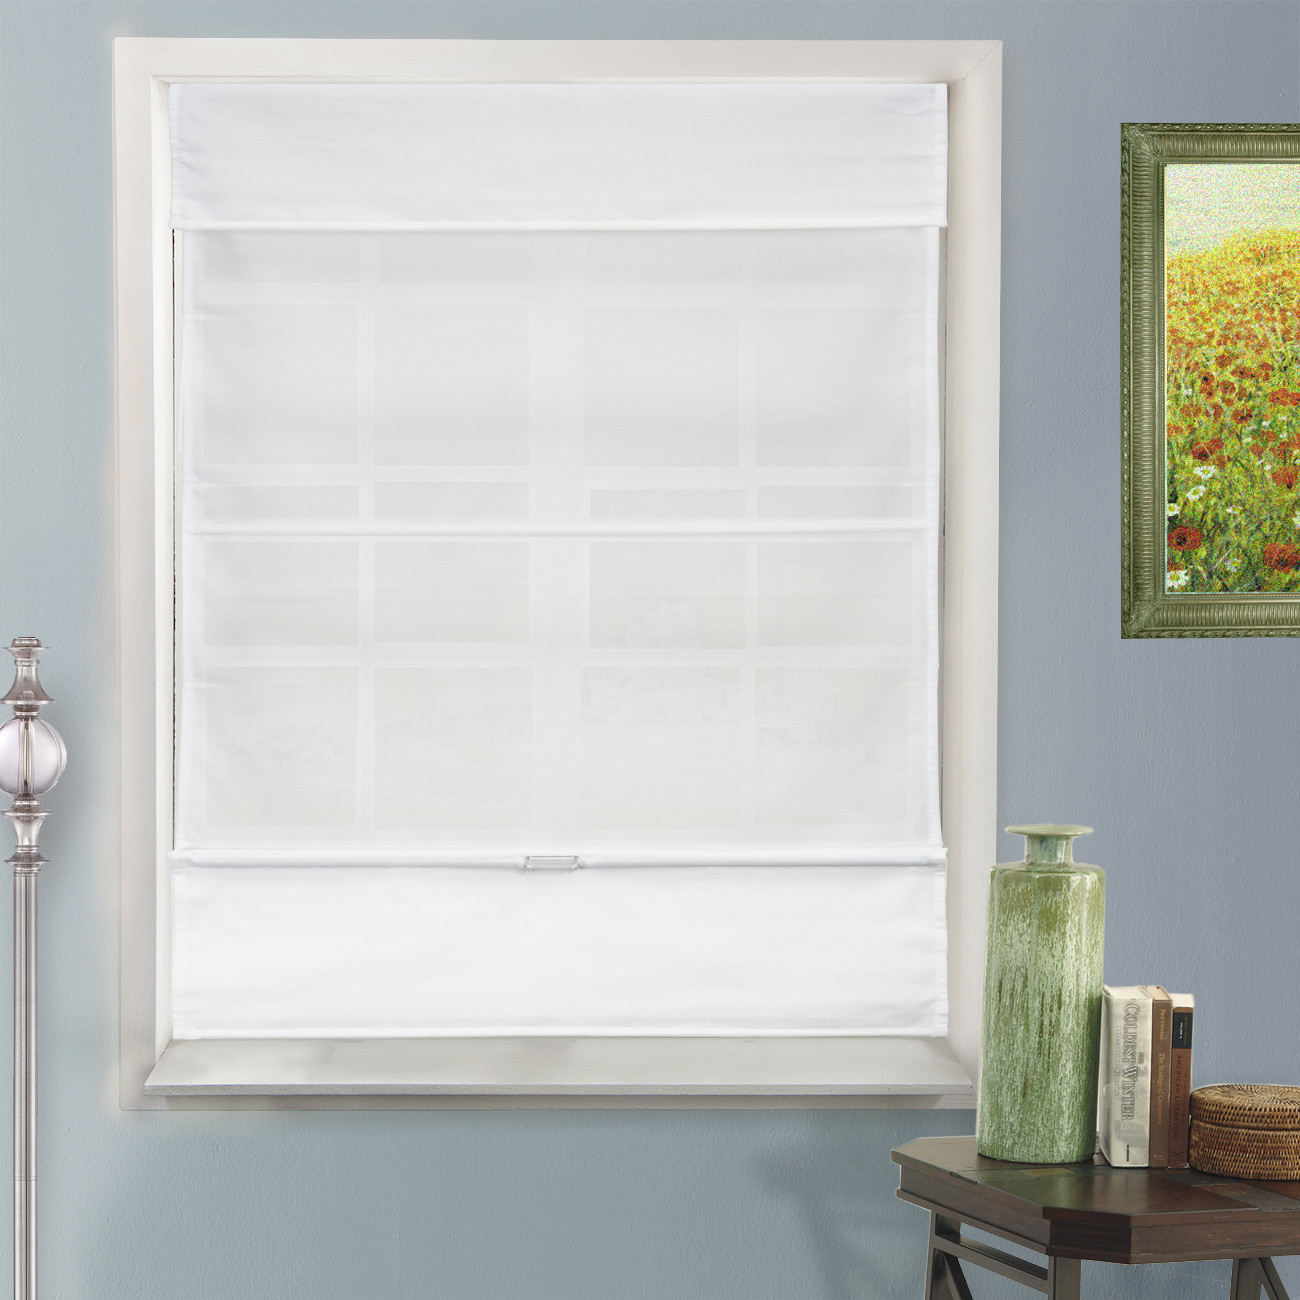 Lowes Window Treatments Temporary Blinds Walmart Menards Window Blinds